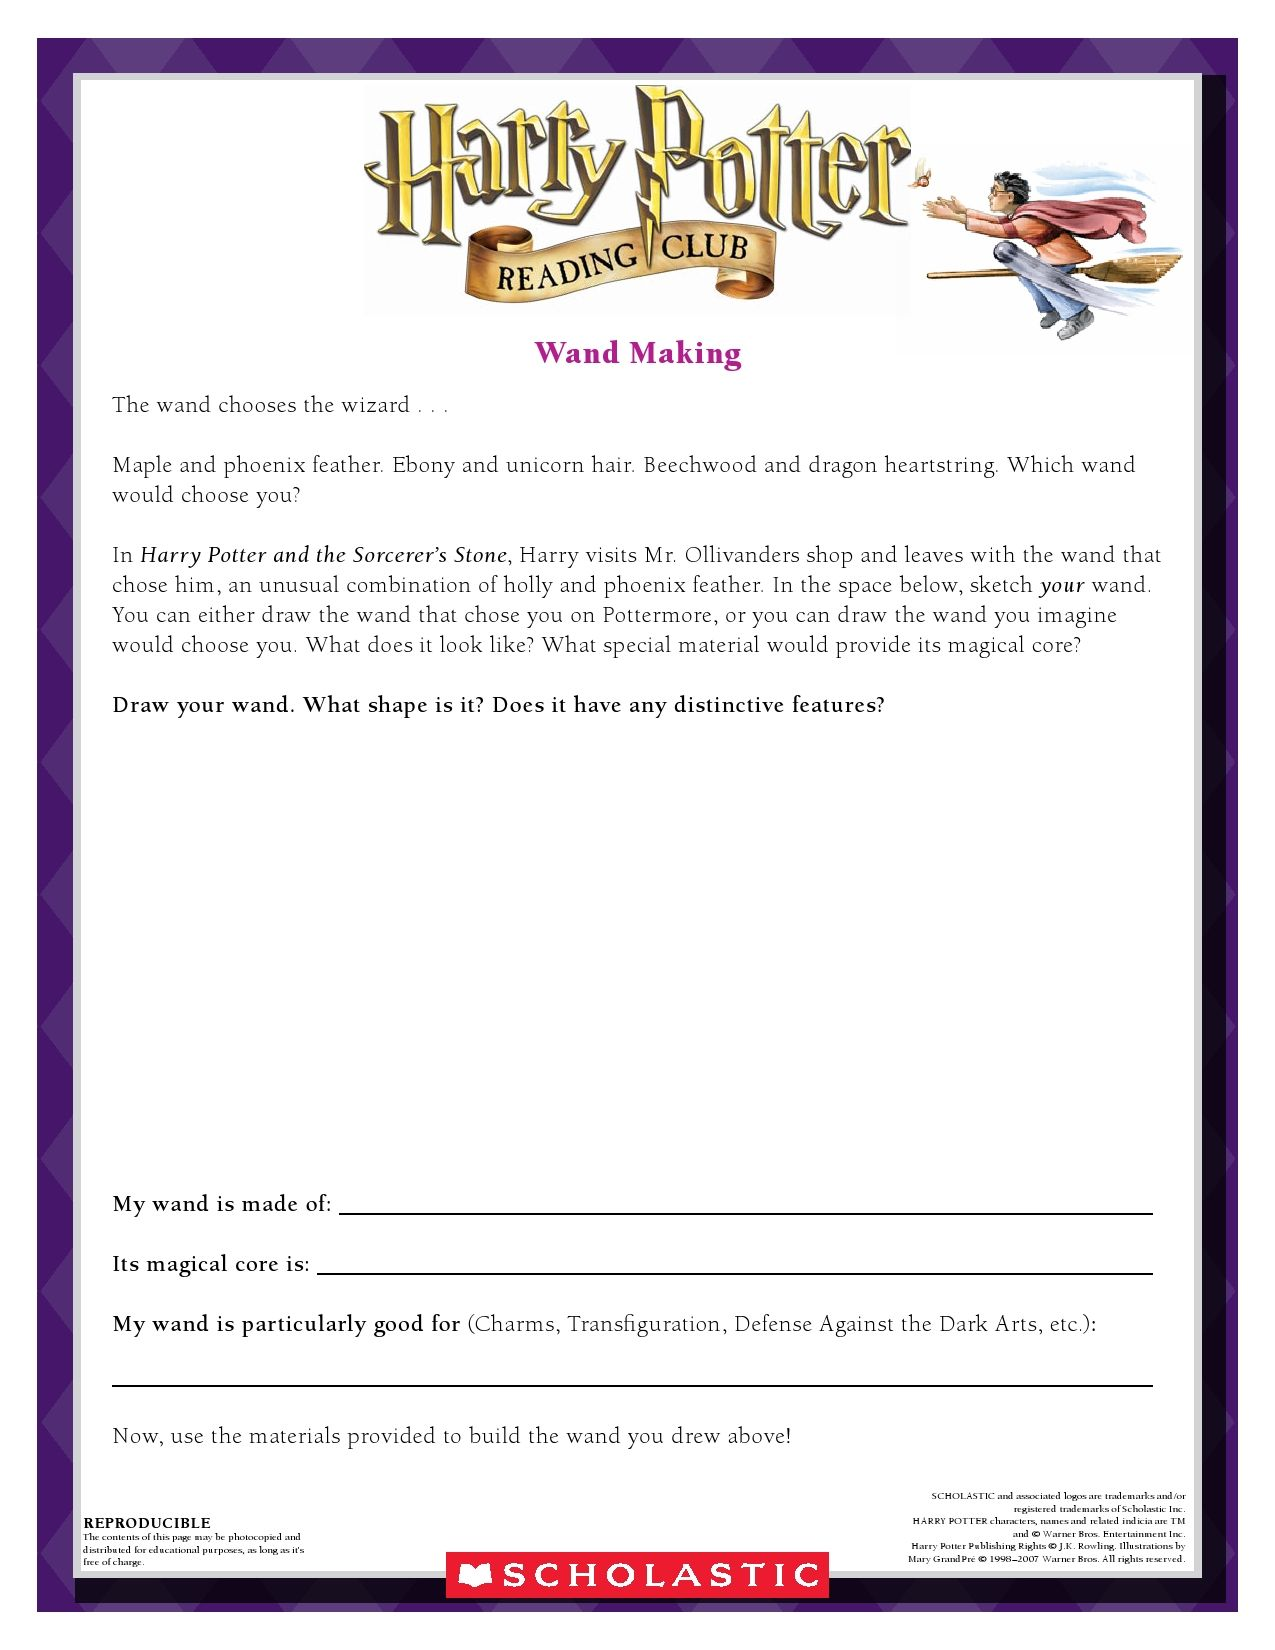 September Make Your Own Wand Craft Your Very Own Wand Download By Clicking Image Above For